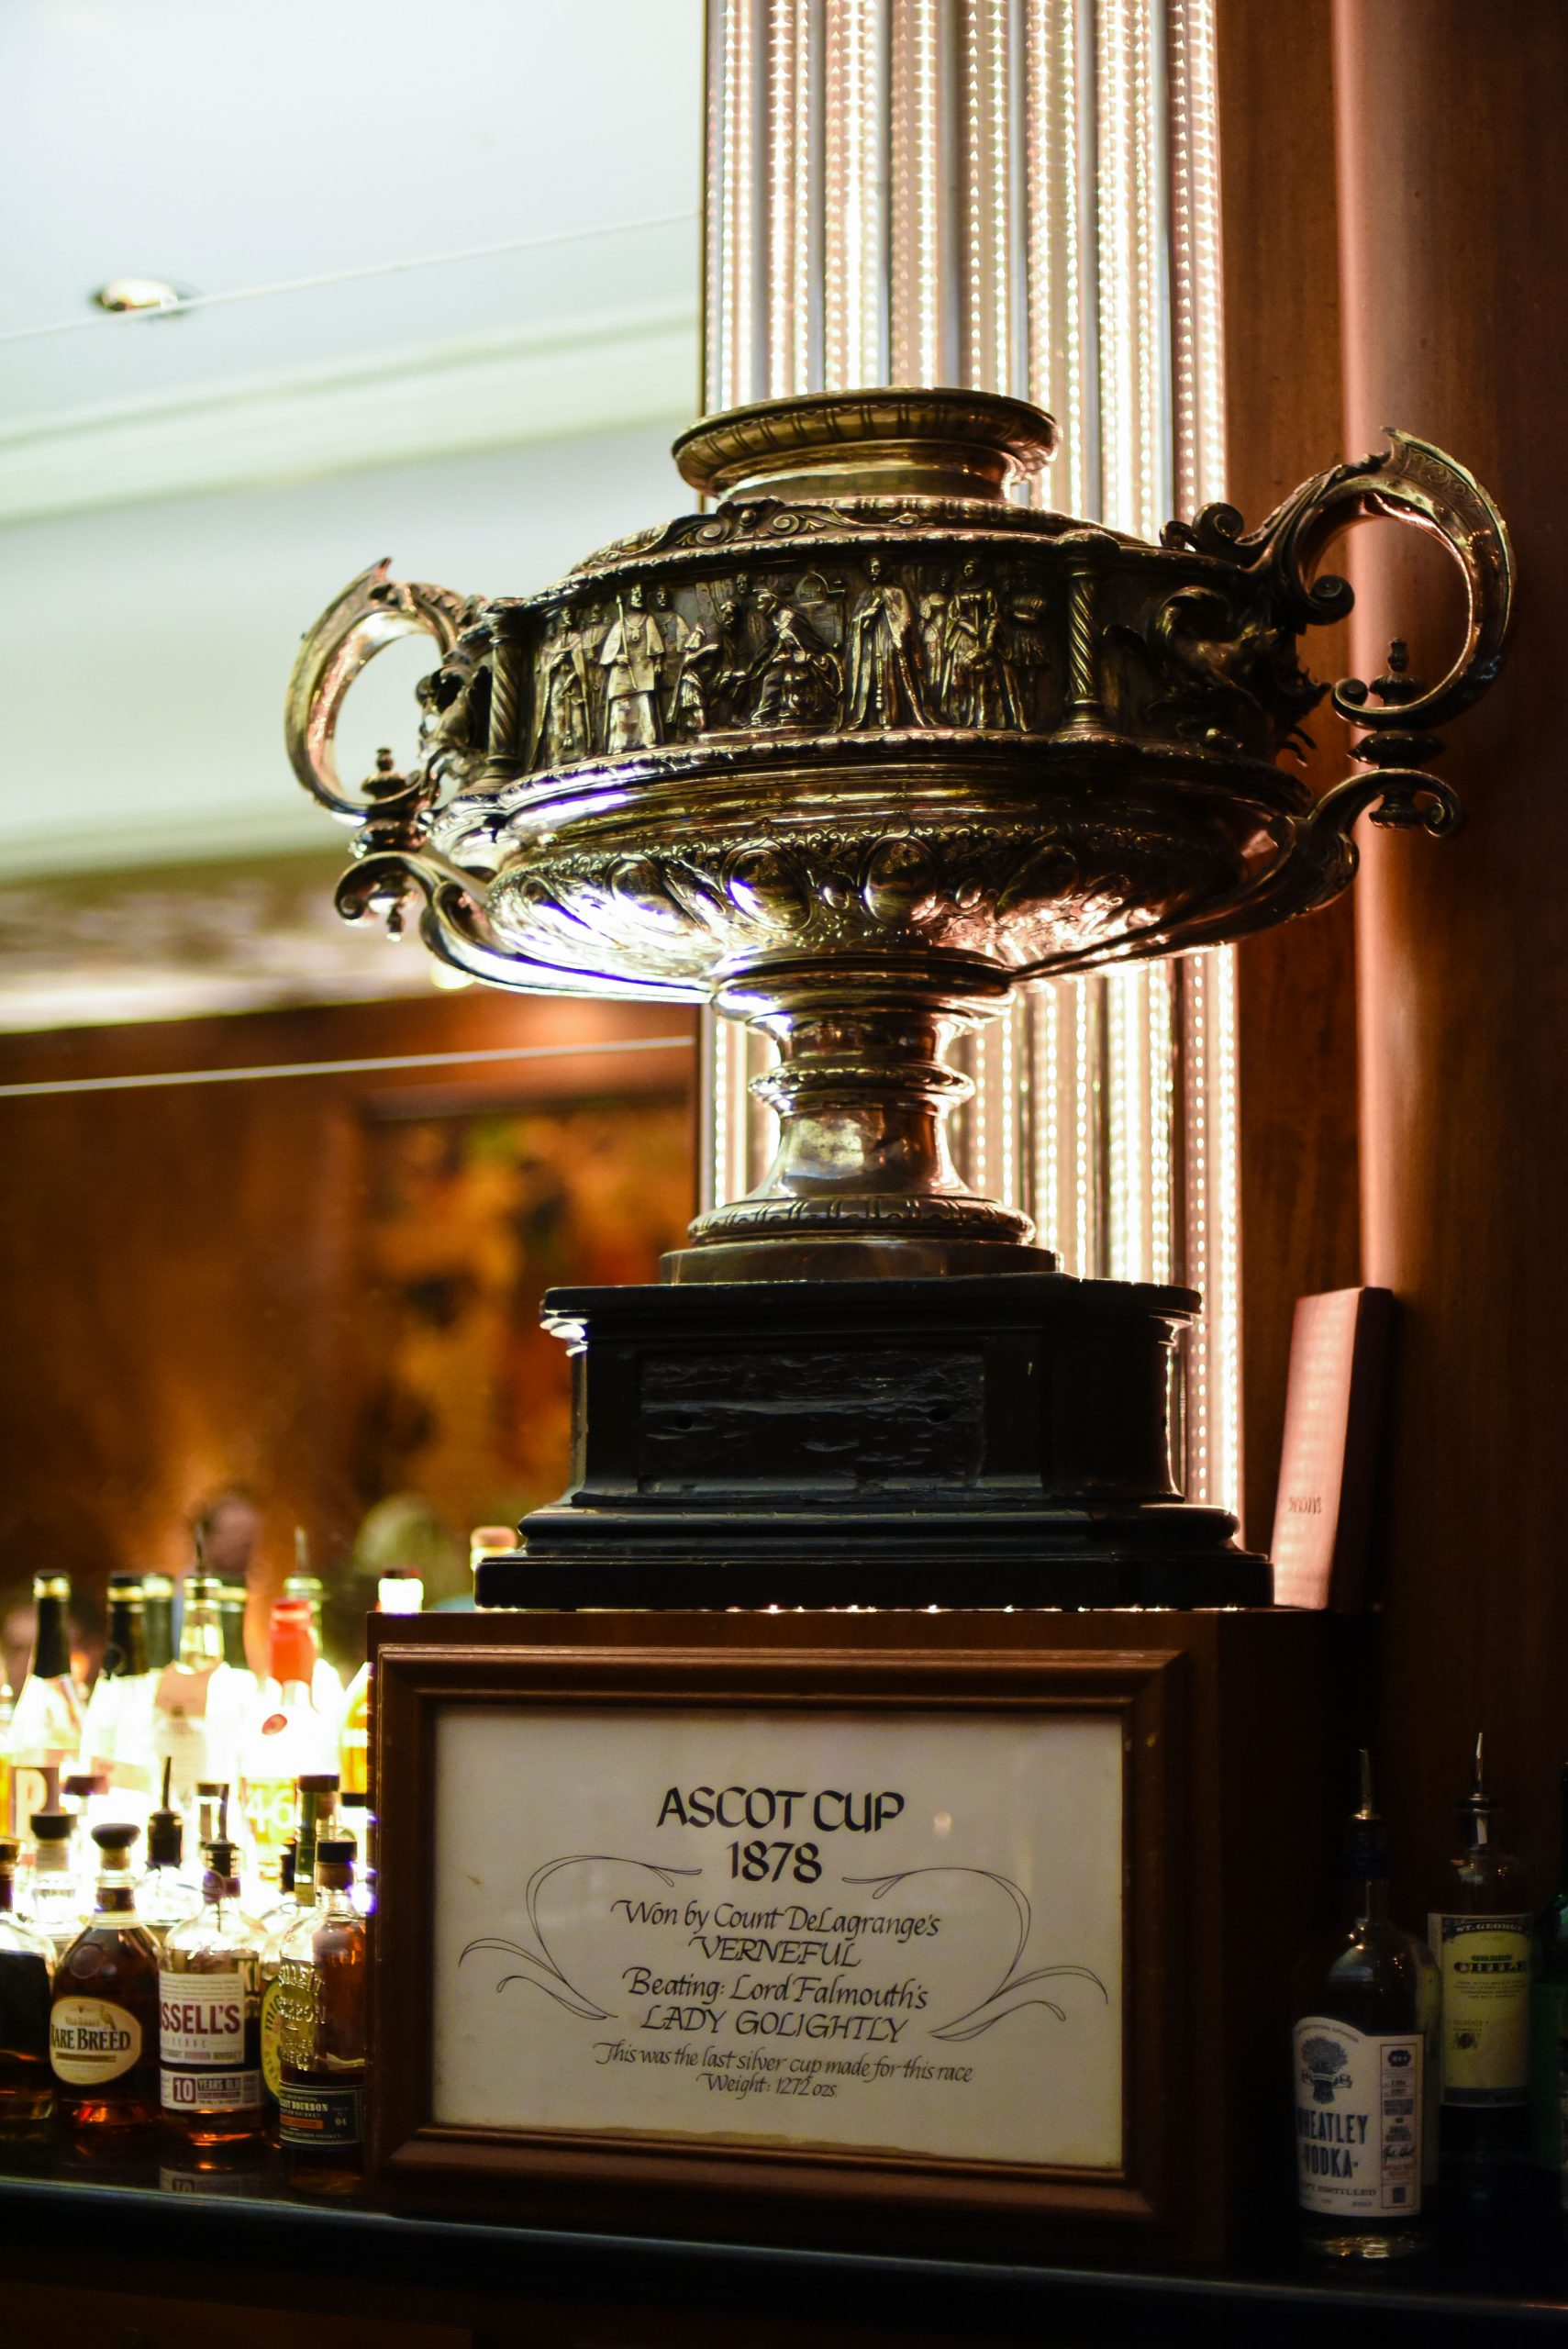 Ascot Cup, 1878. Photo by Ryan Young